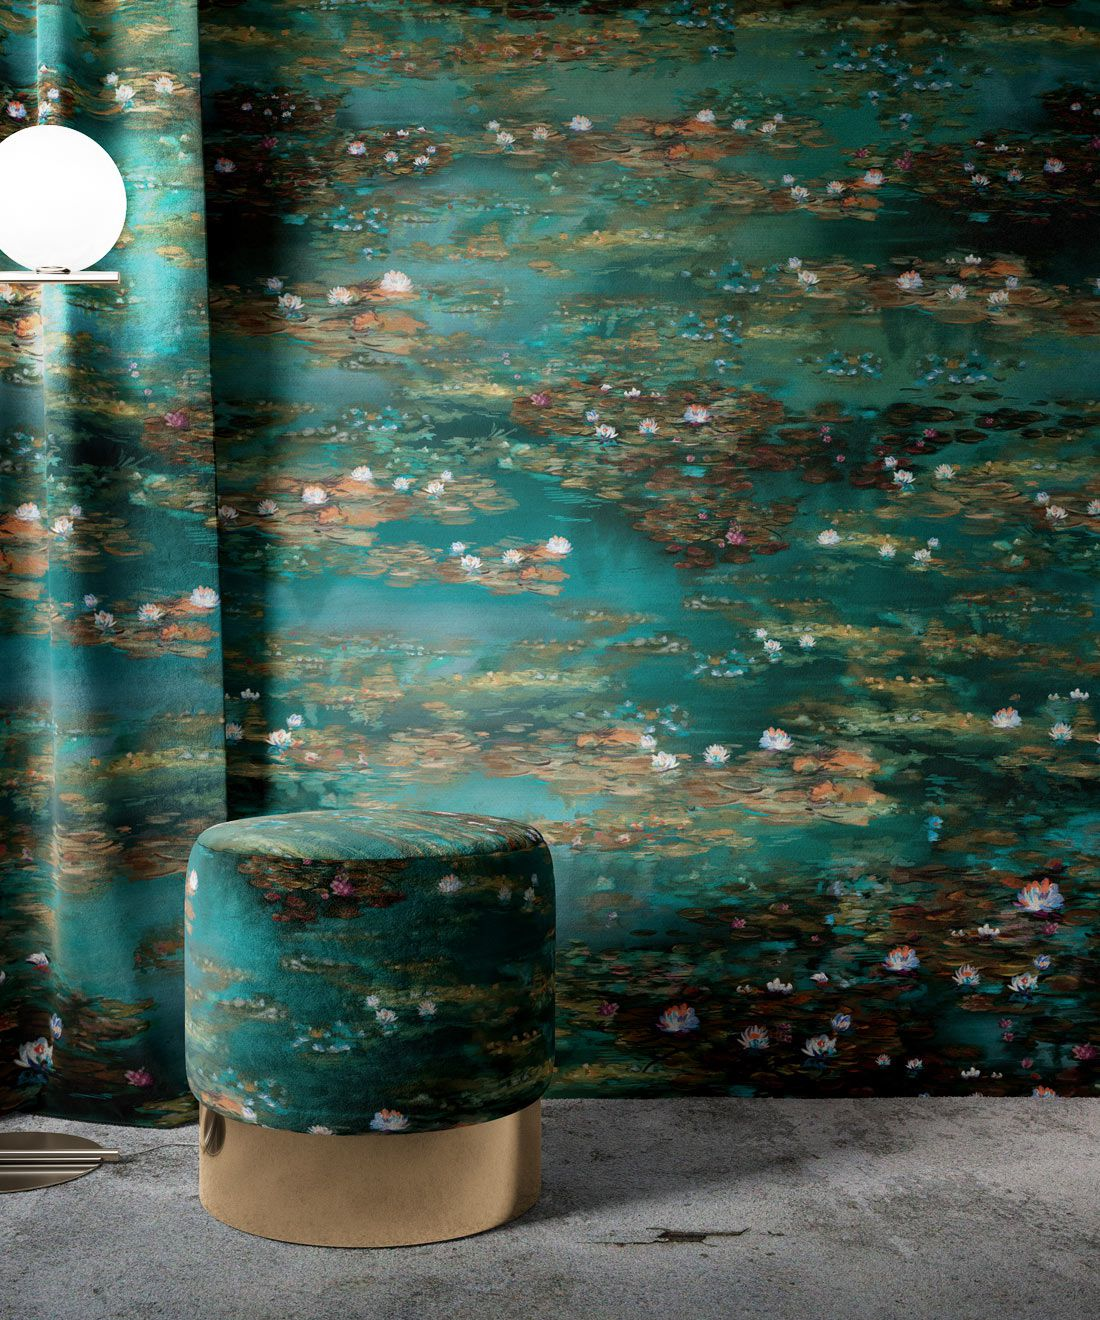 Water Lillies Wallpaper • Abstract Wallpaper • Dreamy Wallpaper • Teal Wallpaper • Insitu